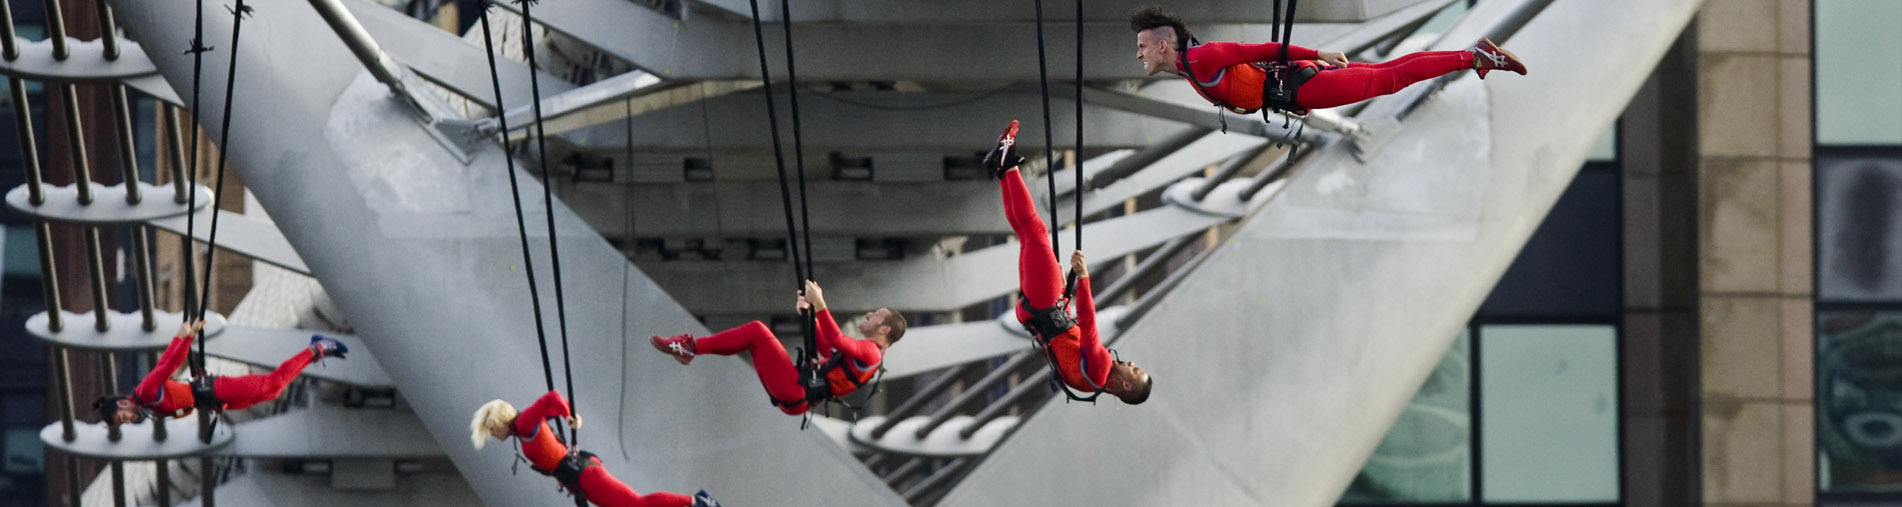 Streb Aerial Acrobats - London Eye, 2012